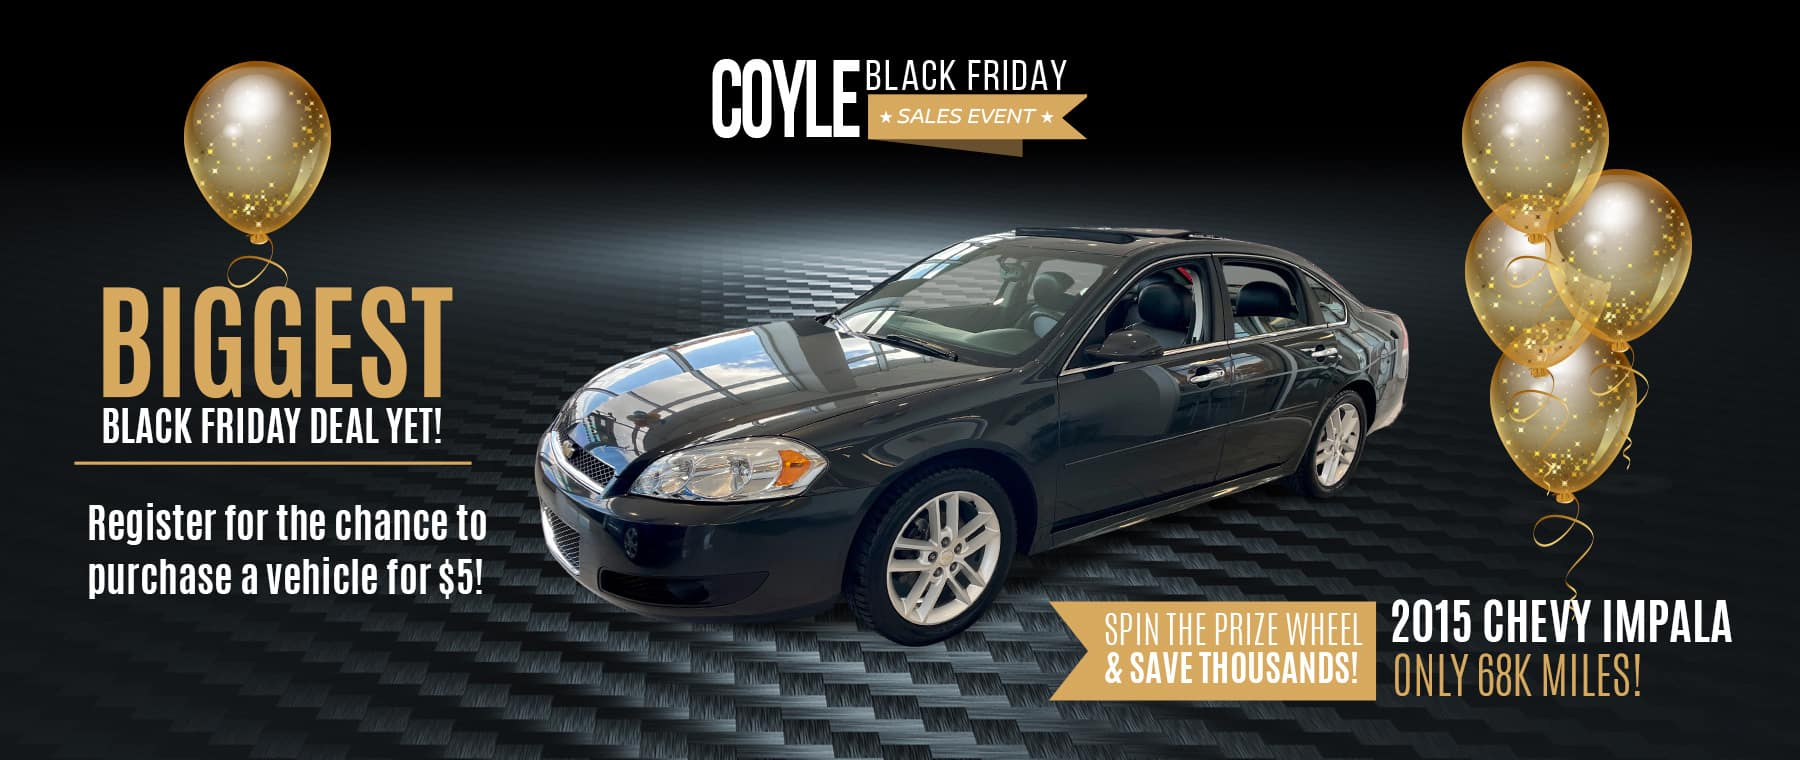 Best Deals for Black Friday at Coyle Automotive in Clarksville, Indiana